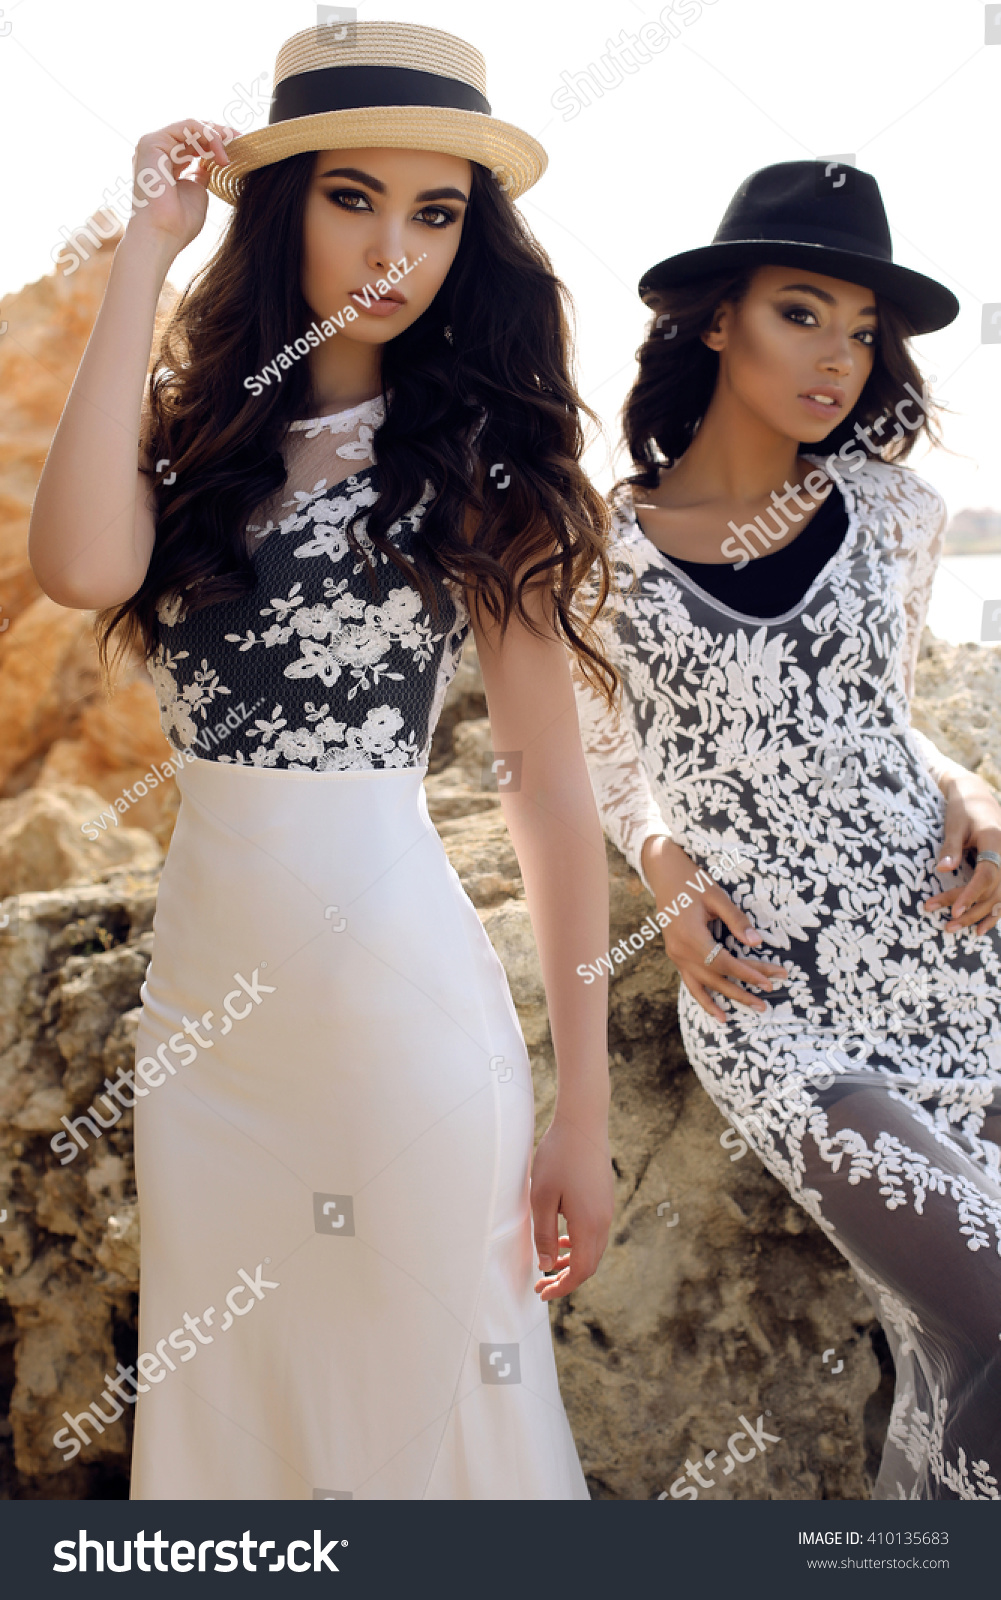 aee7610d302 Fashion outdoor photo of beautiful girls with dark hair wears casual  elegant clothes and hat posing at summer seacoast